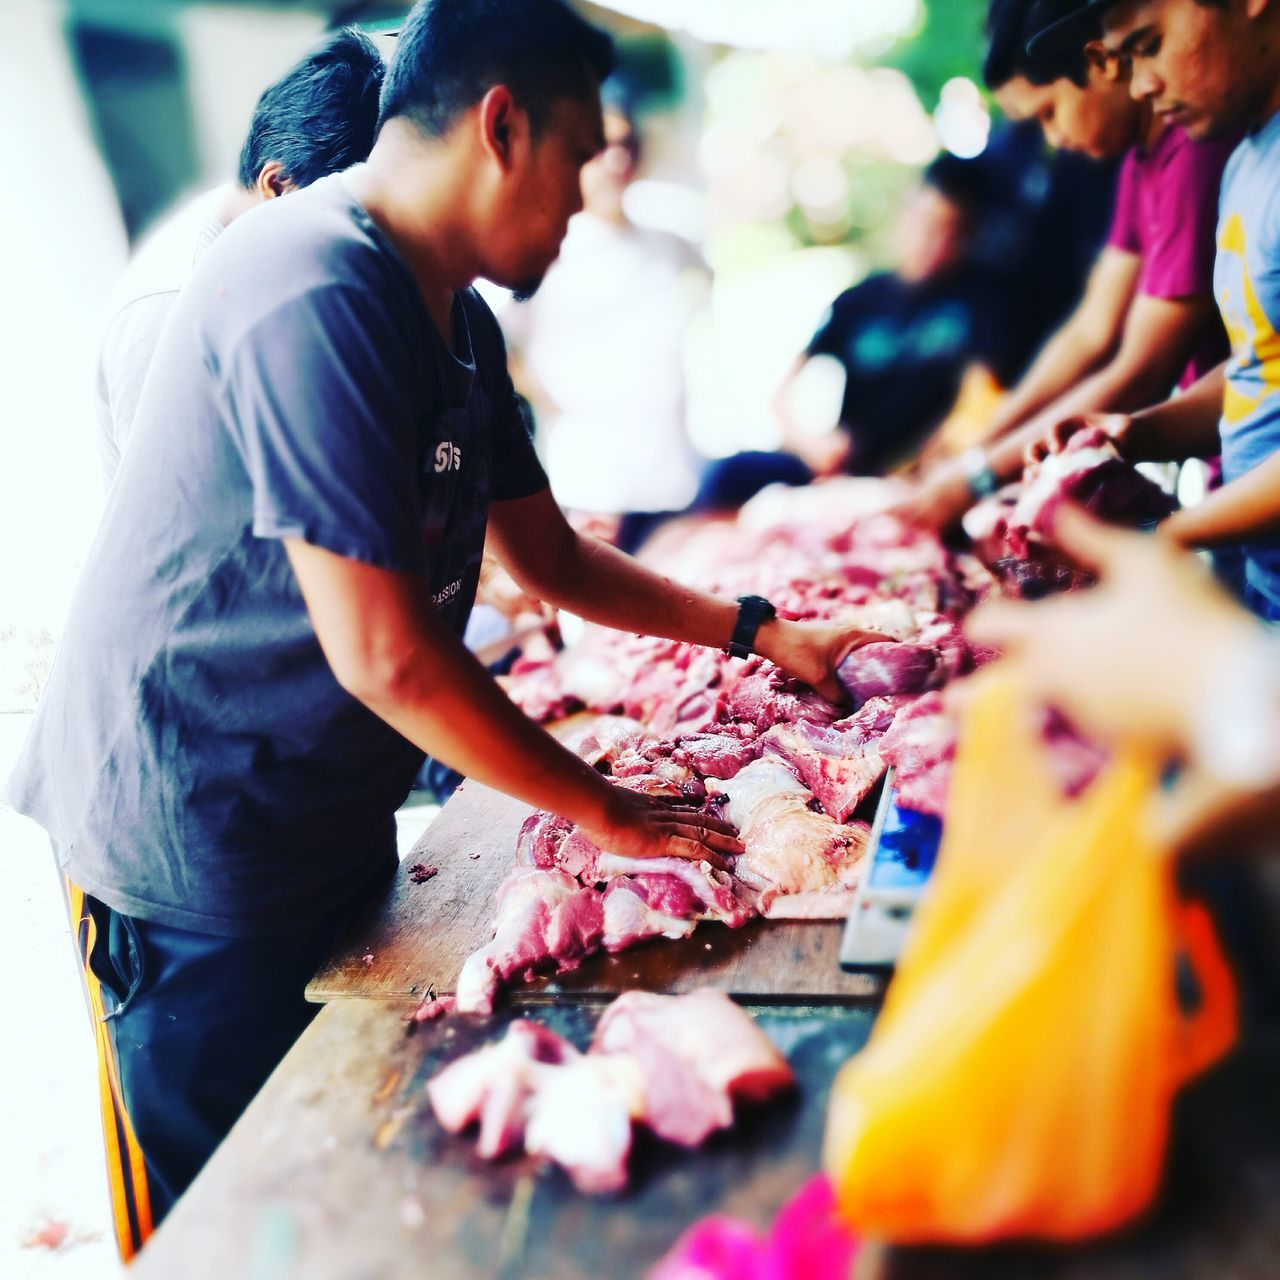 Celebrate eid adha in malaysia Eiduladha Malaysia Selective Focus Food And Drink Freshness Incidental People Food Large Group Of Objects Focus On Foreground Day Person Abundance Collection First Eyeem Photo